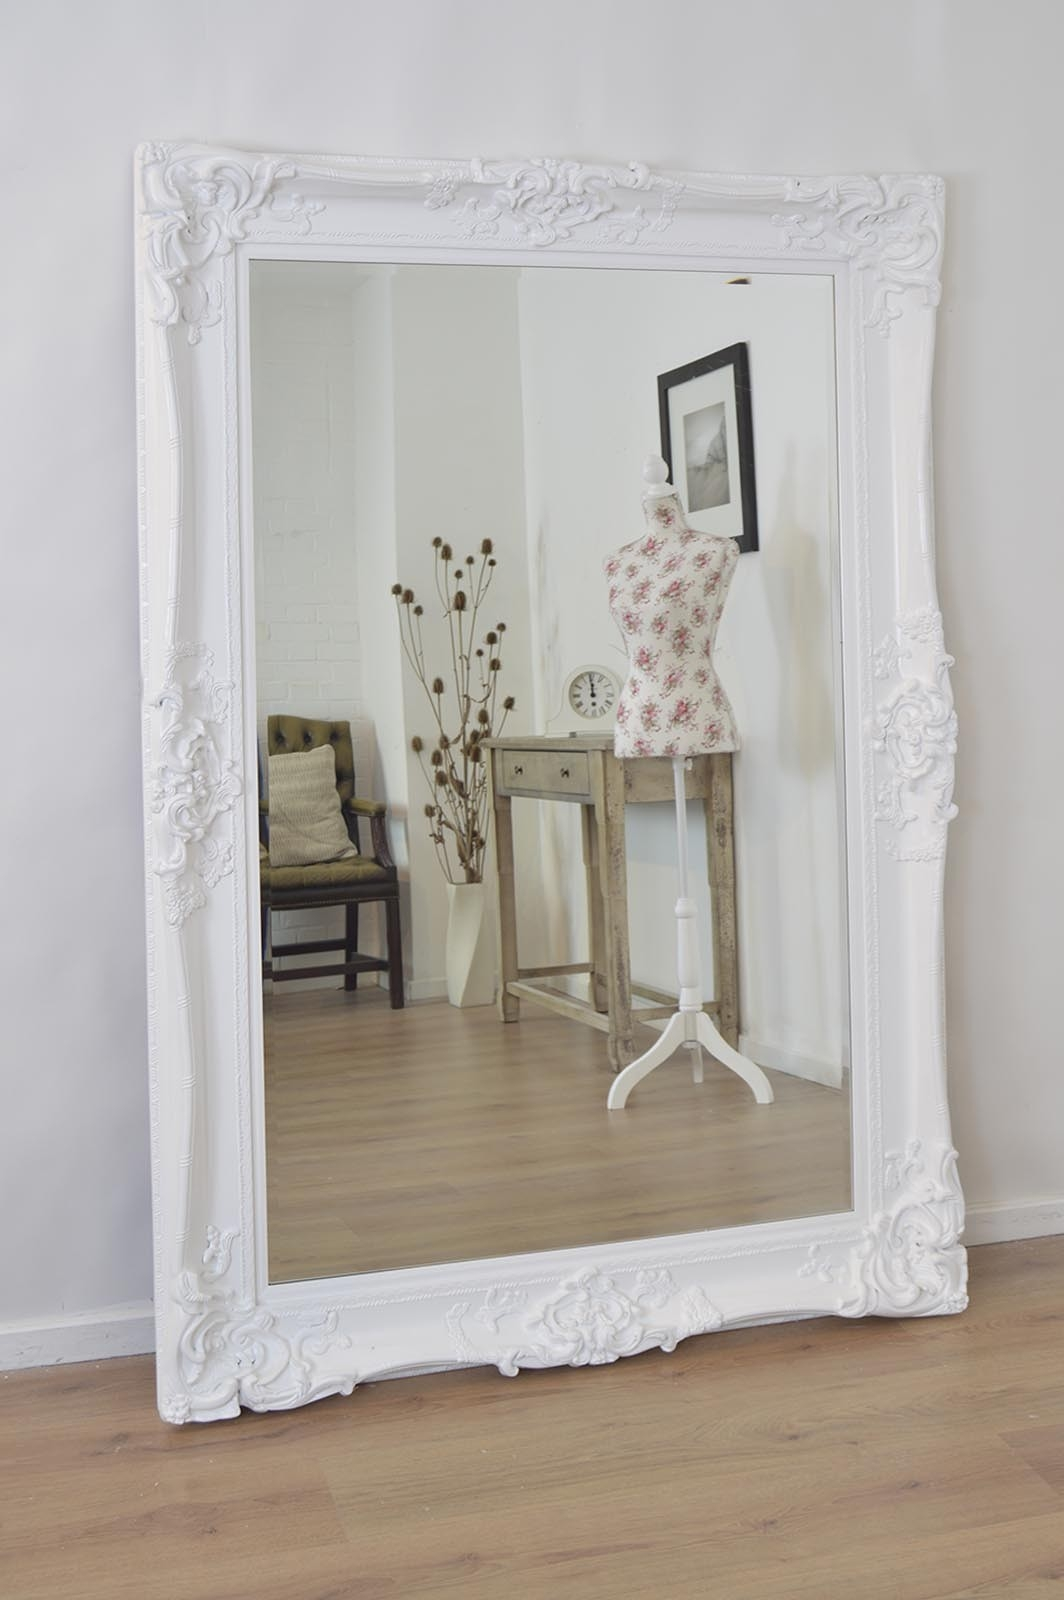 Large White Antique Shab Chic Ornate Wall Mirror 6ft X 4ft Within Shabby Chic Floor Standing Mirror (Image 12 of 15)